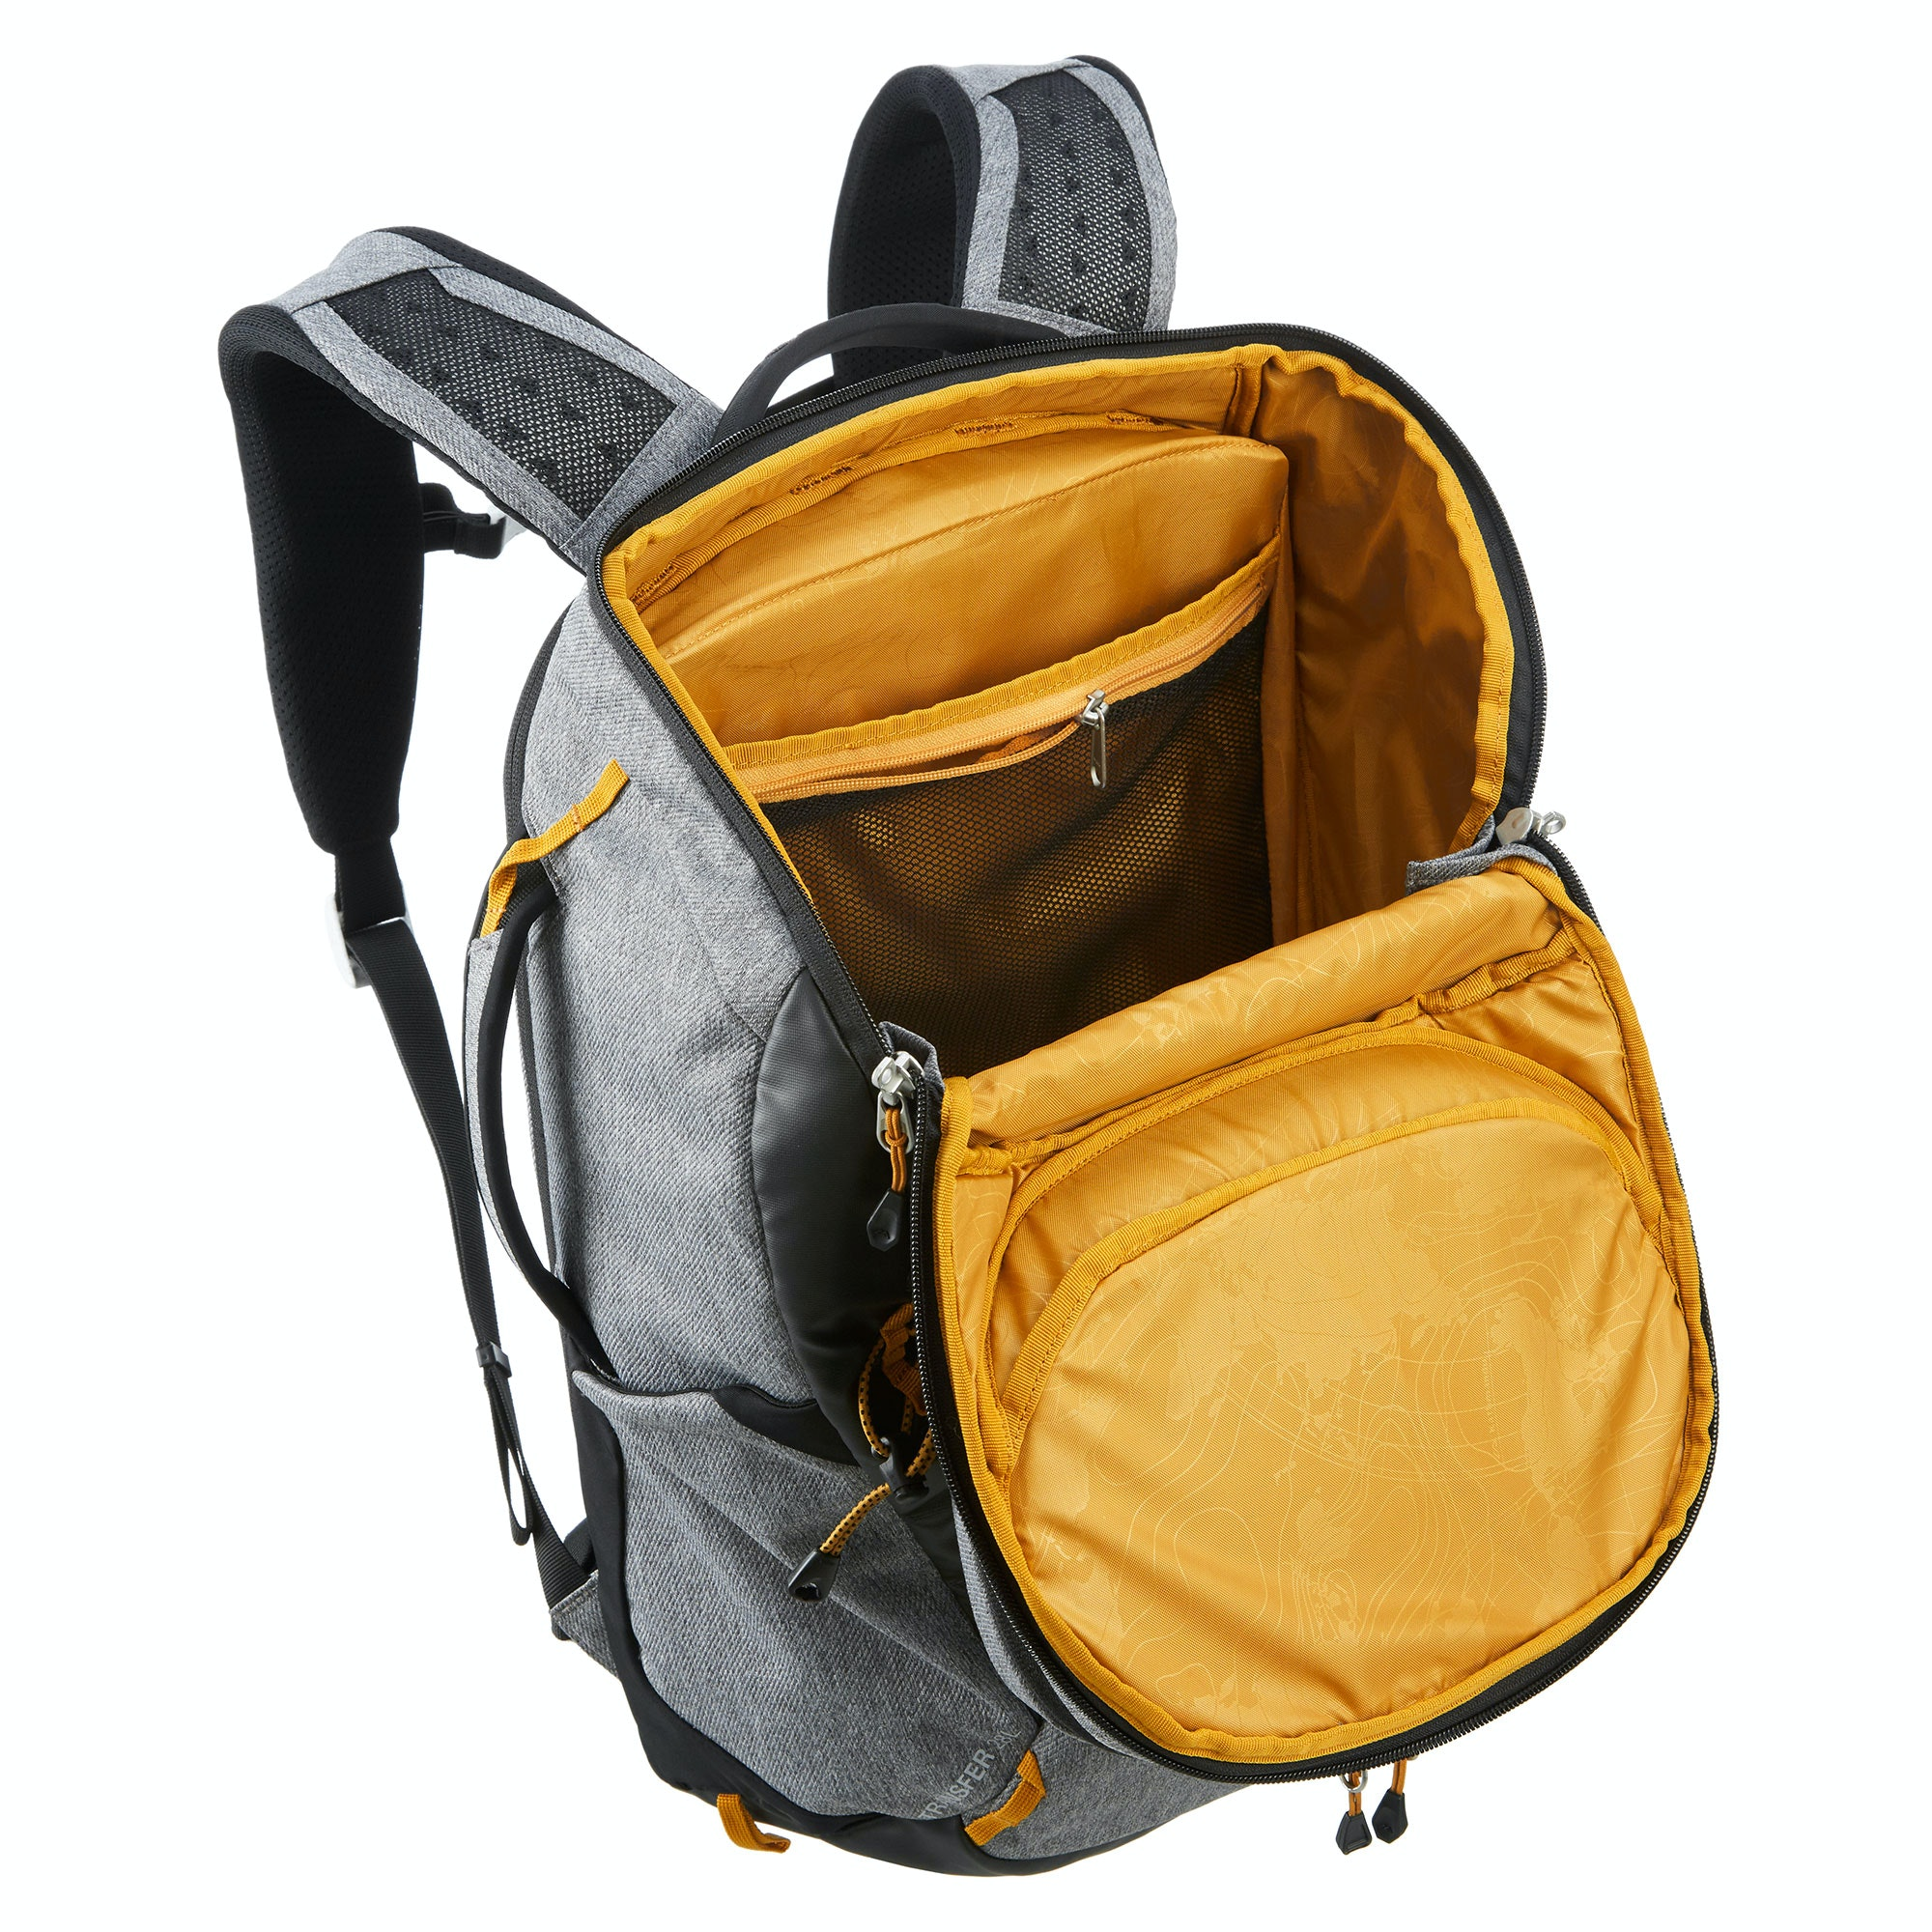 NEW-Kathmandu-Transfer-28L-Commuter-Bag-Laptop-Backpack-Rucksack-Travel-Pack-v3 thumbnail 24